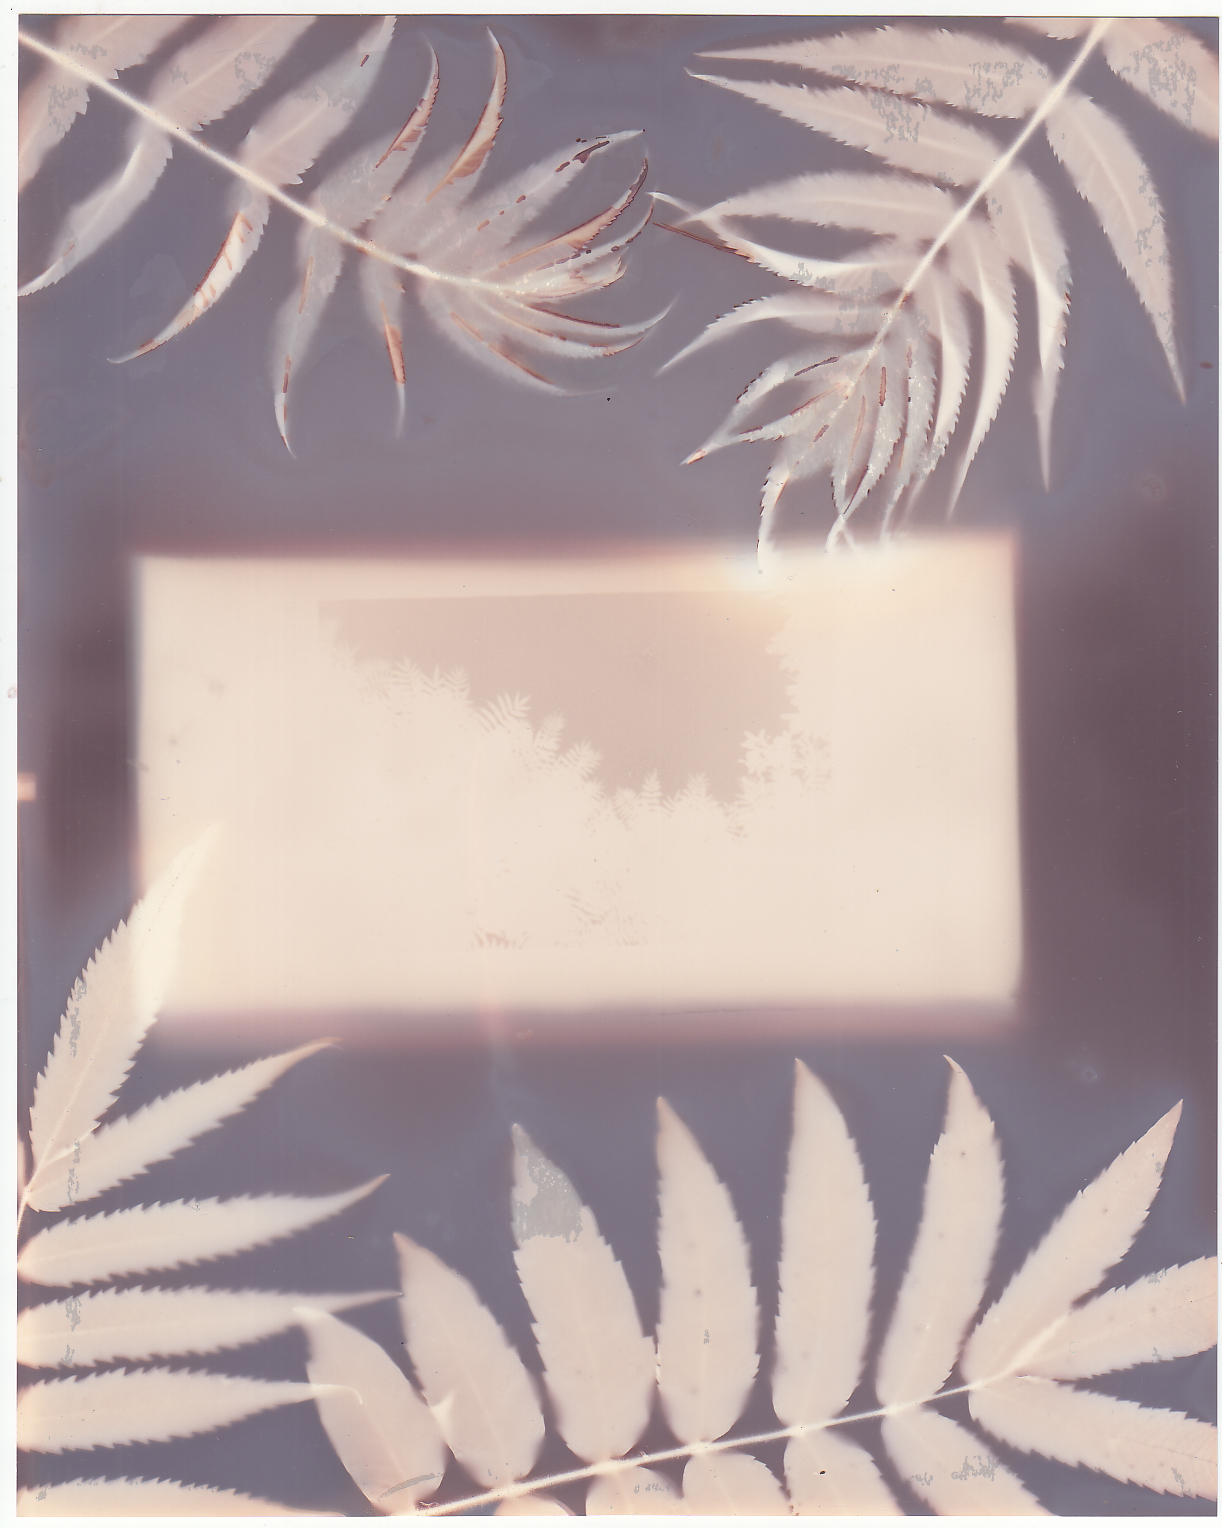 Bellows photogram